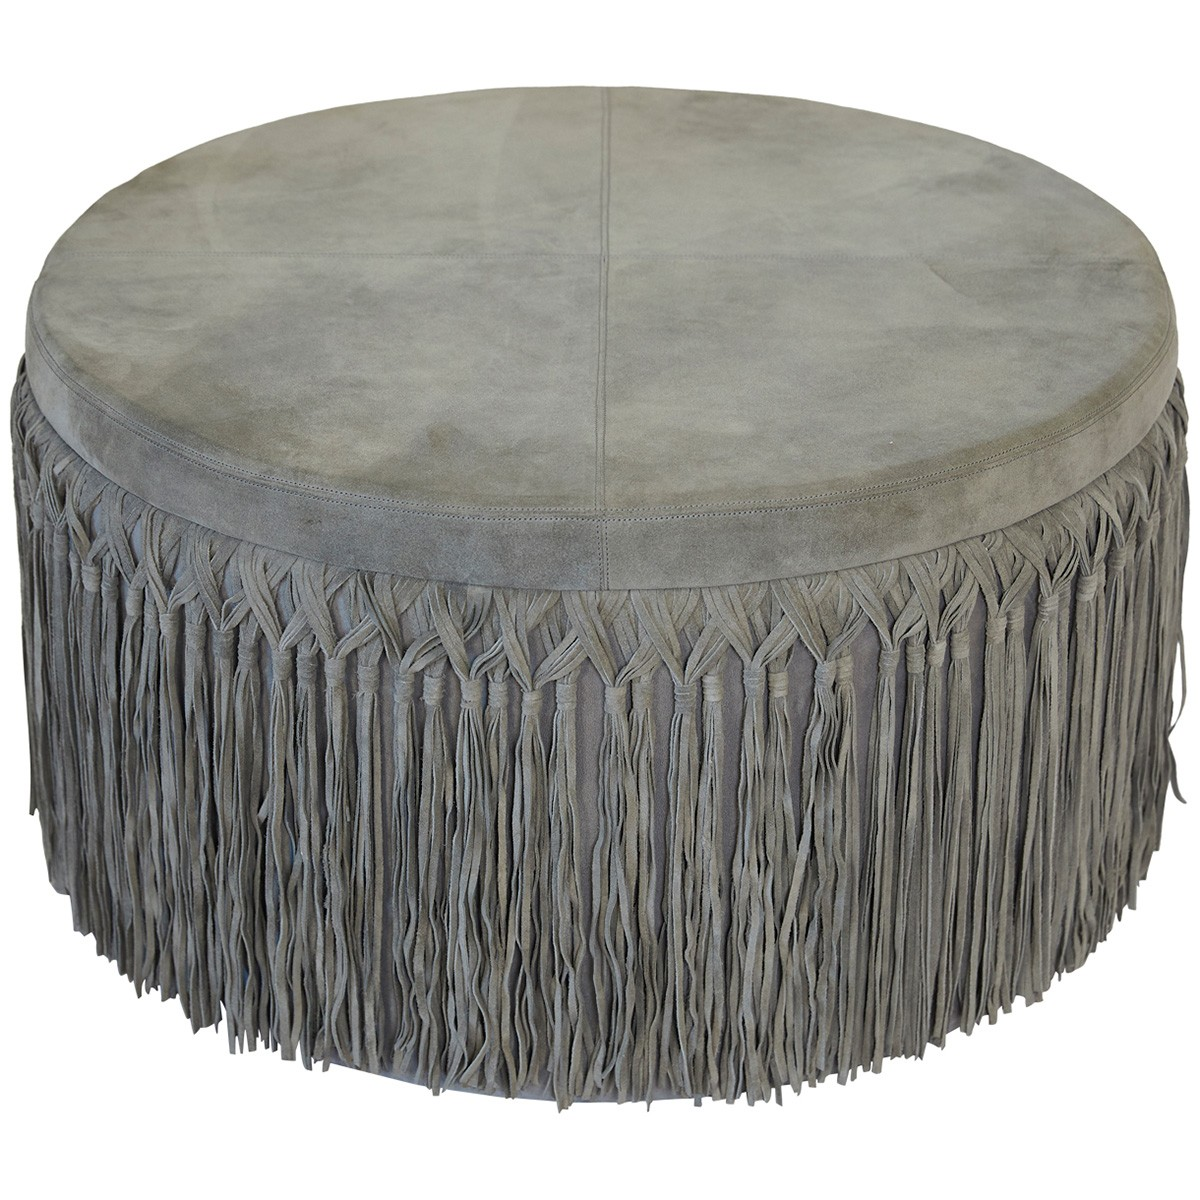 Indio Suede Leather Round Ottoman